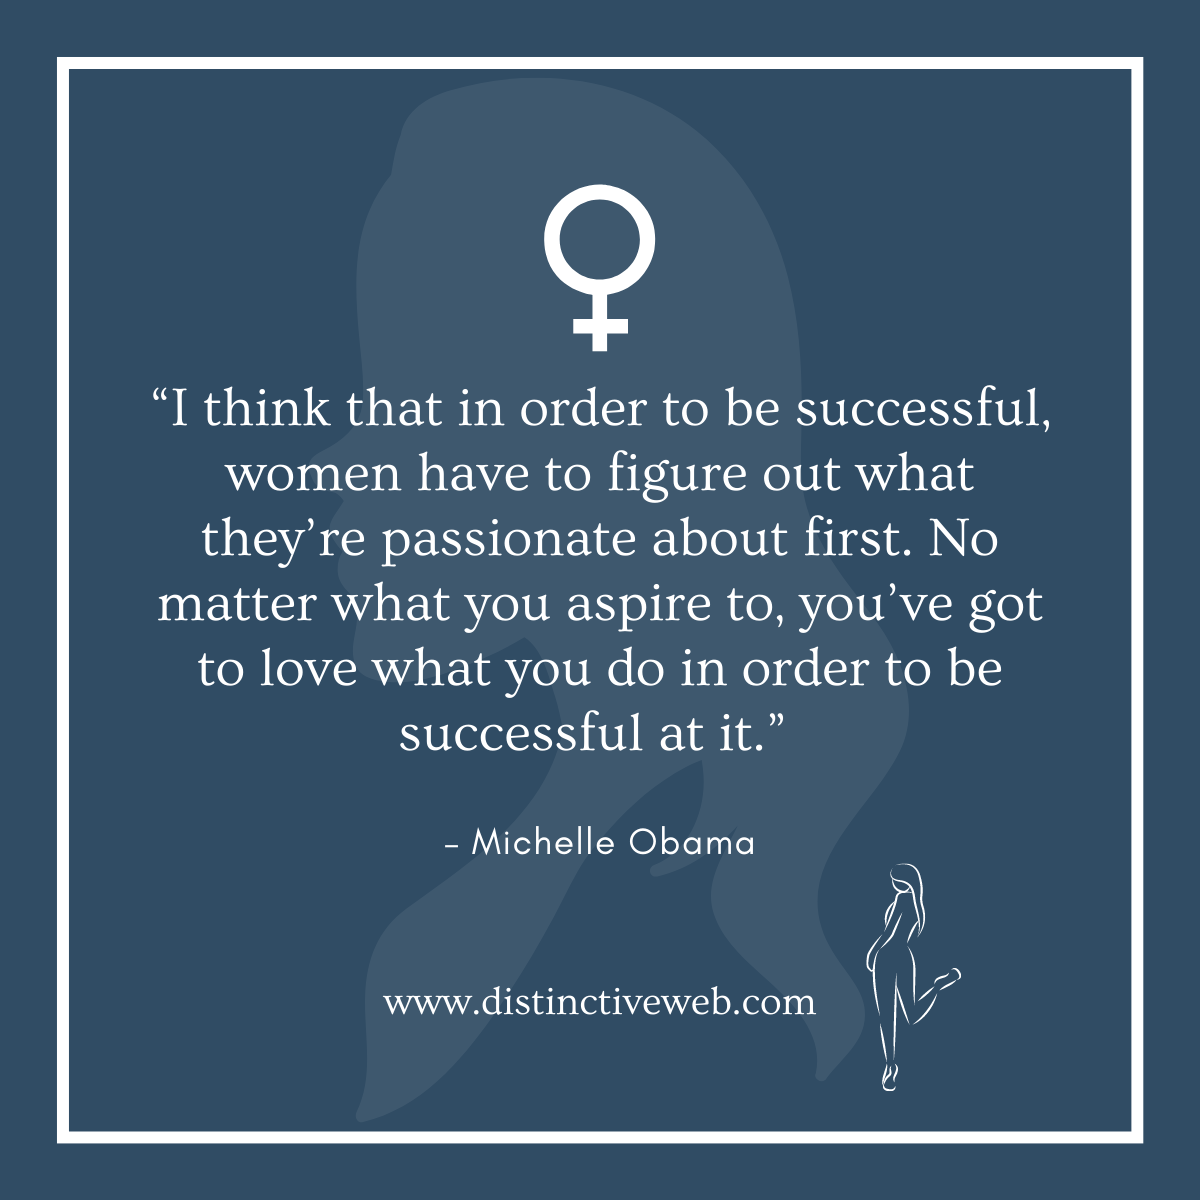 """""""I think that in order to be successful, women have to figure out what they're passionate about first. No matter what you aspire to, you've got to love what you do in order to be successful at it."""" – Michelle Obama"""